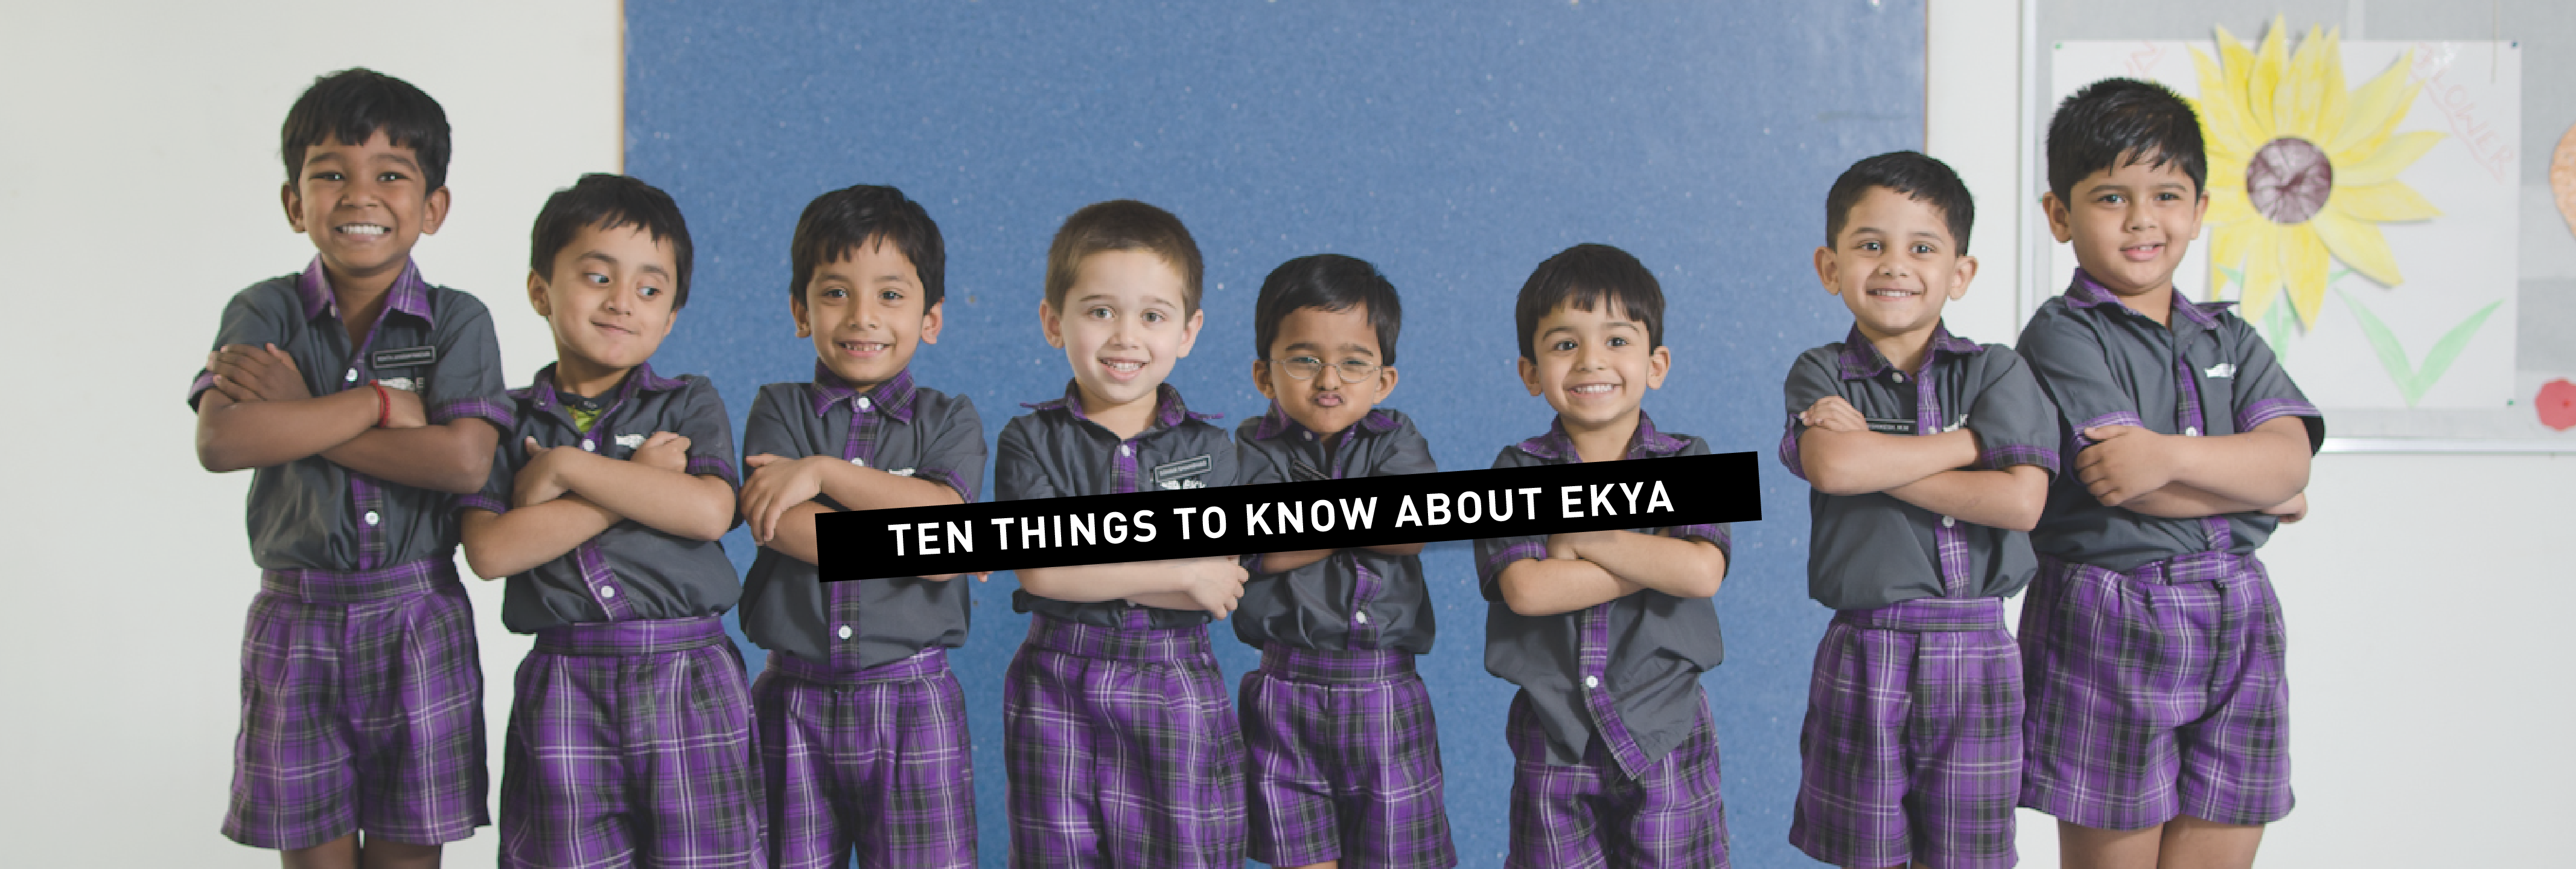 Ekya Schools - Features